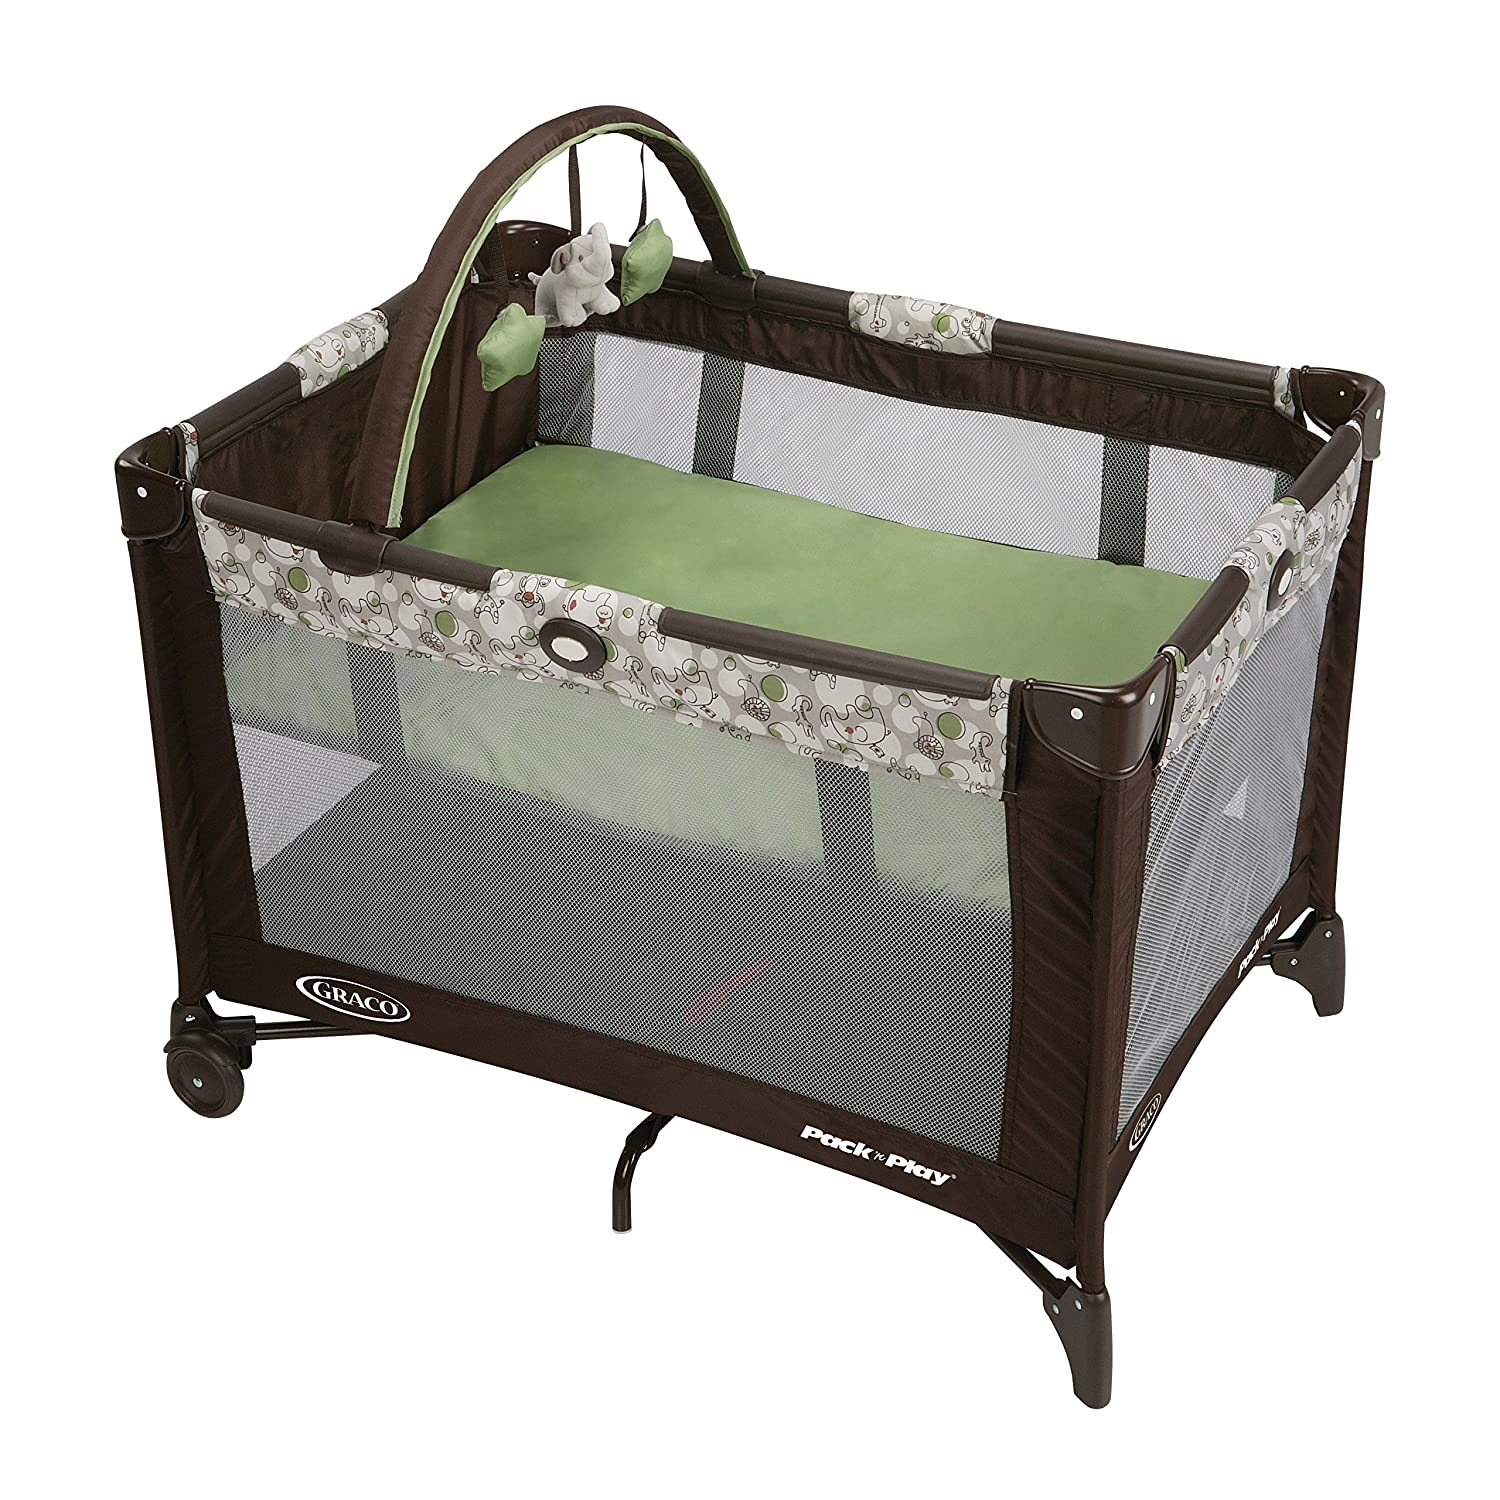 Graco Pack 'n Play On the Go Playard, Pasadena, One Size 1801373